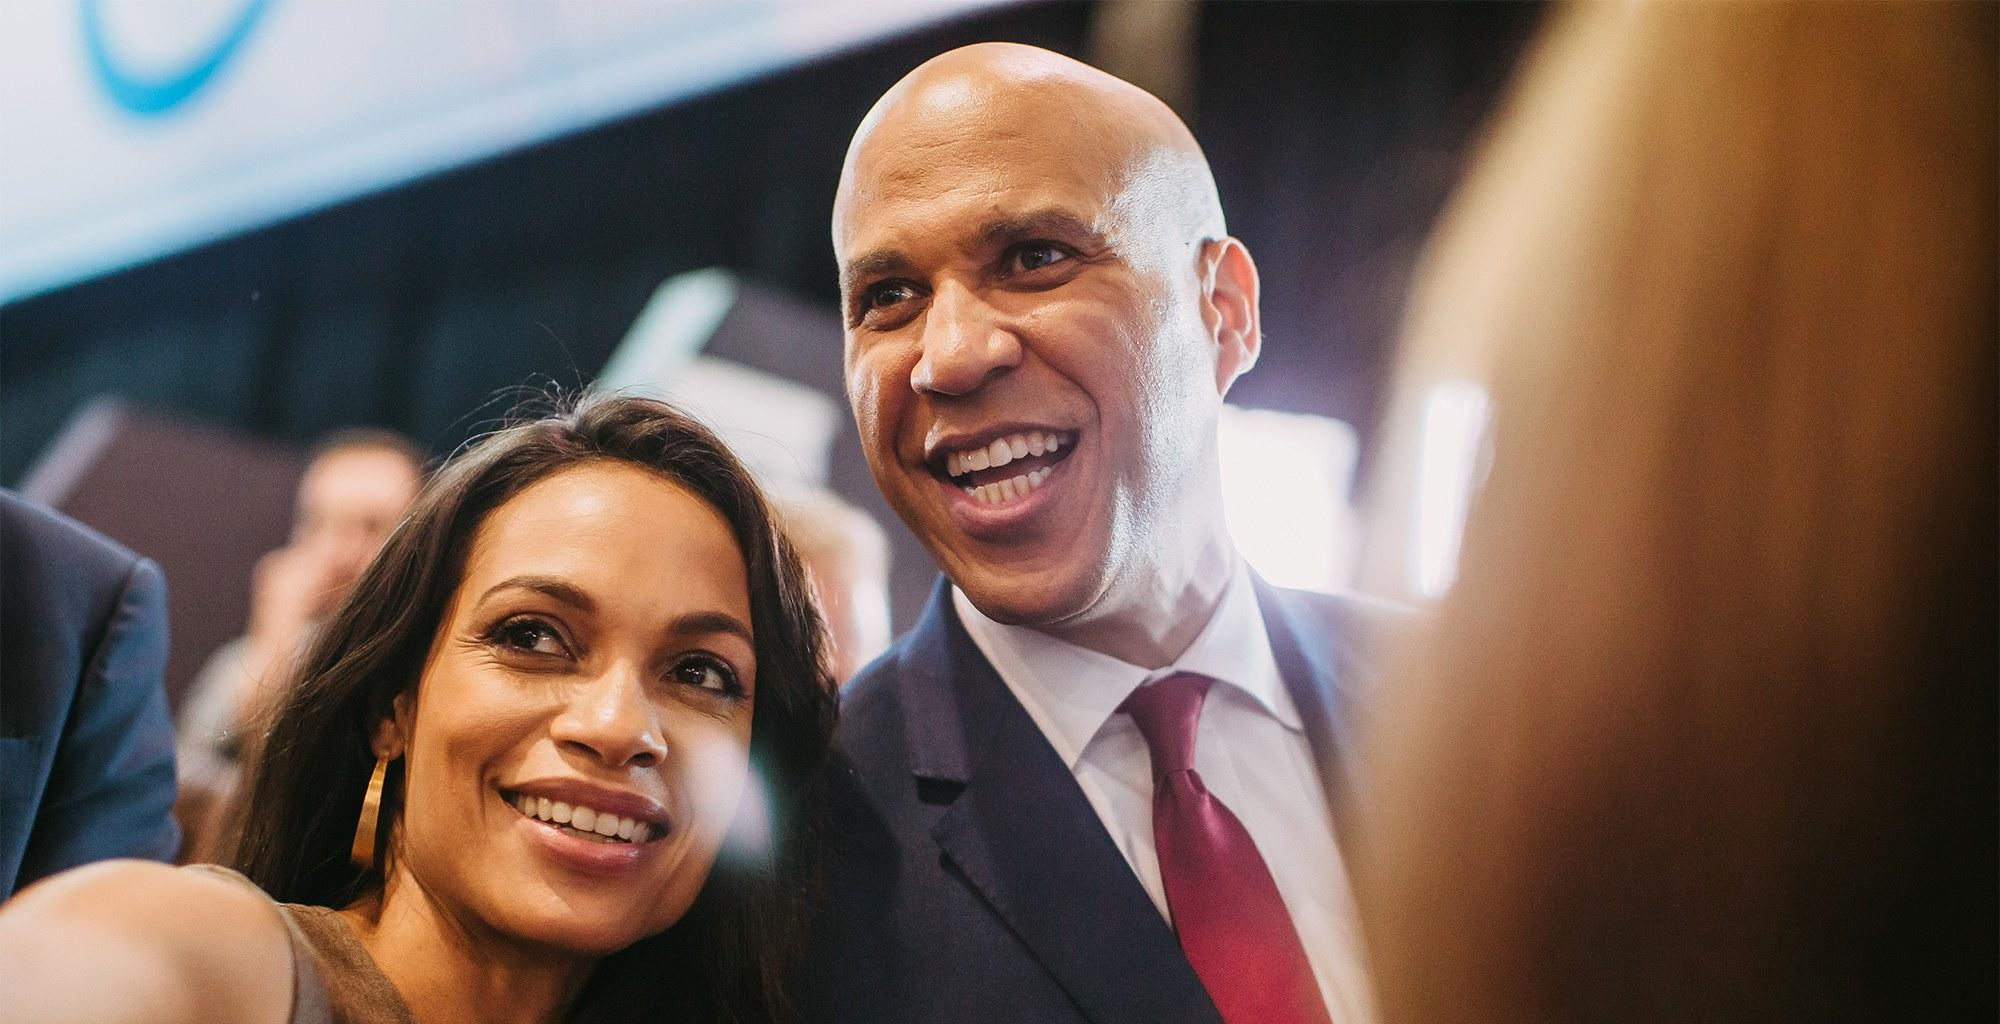 Rosario Dawson's Family Members Like Her Boyfriend, Cory Booker 'A Lot' Source Says